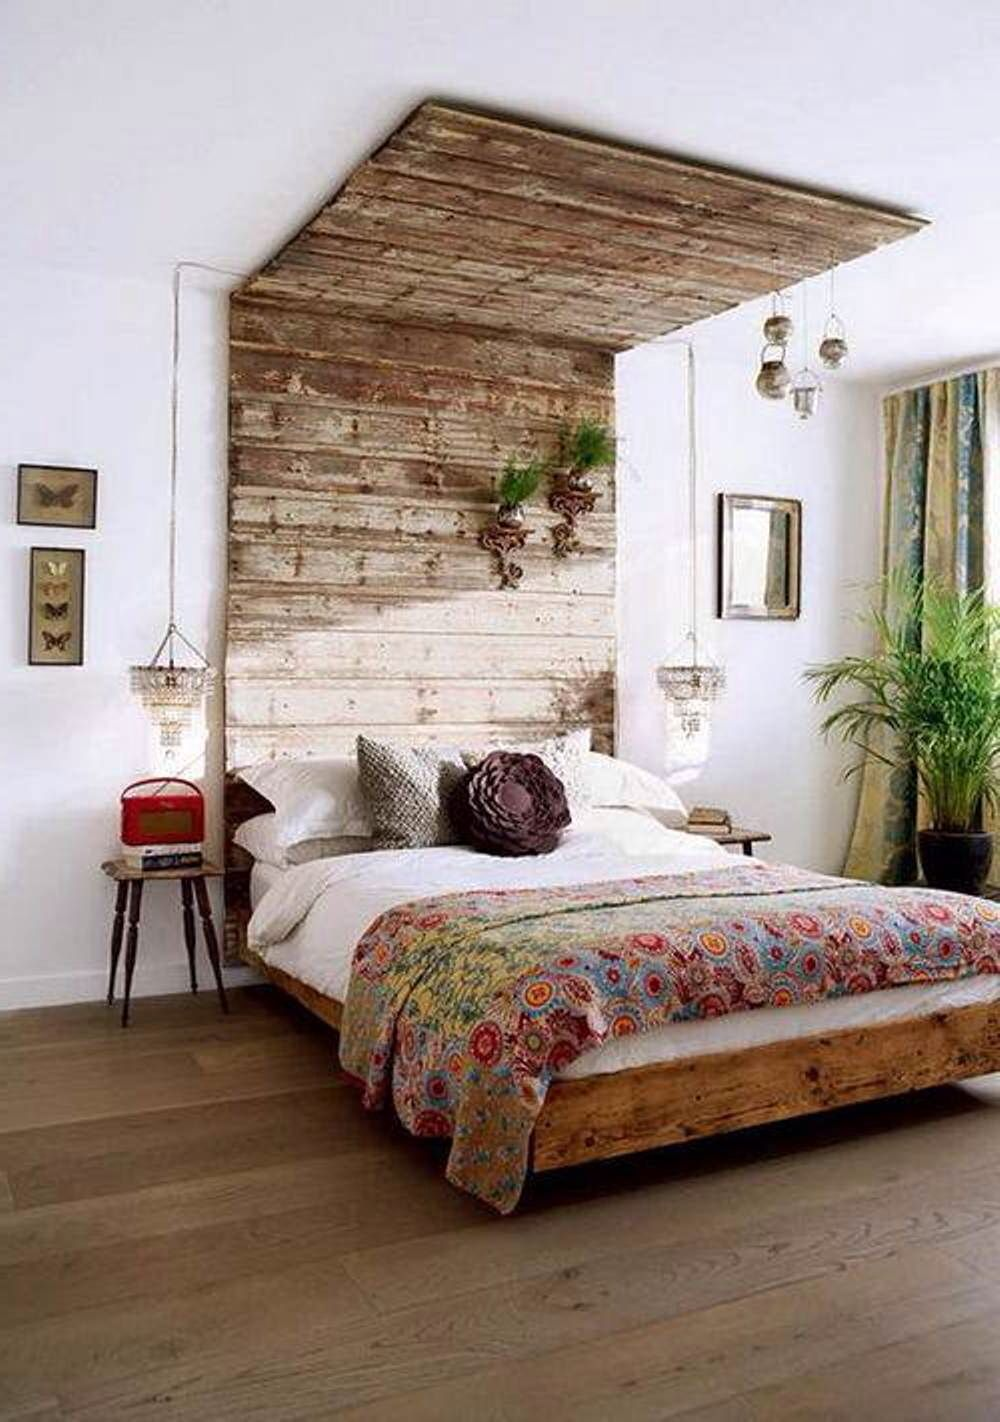 Wooden overhang bed frame with plant holder. | Remodel ... on Modern Boho Bed Frame  id=73744